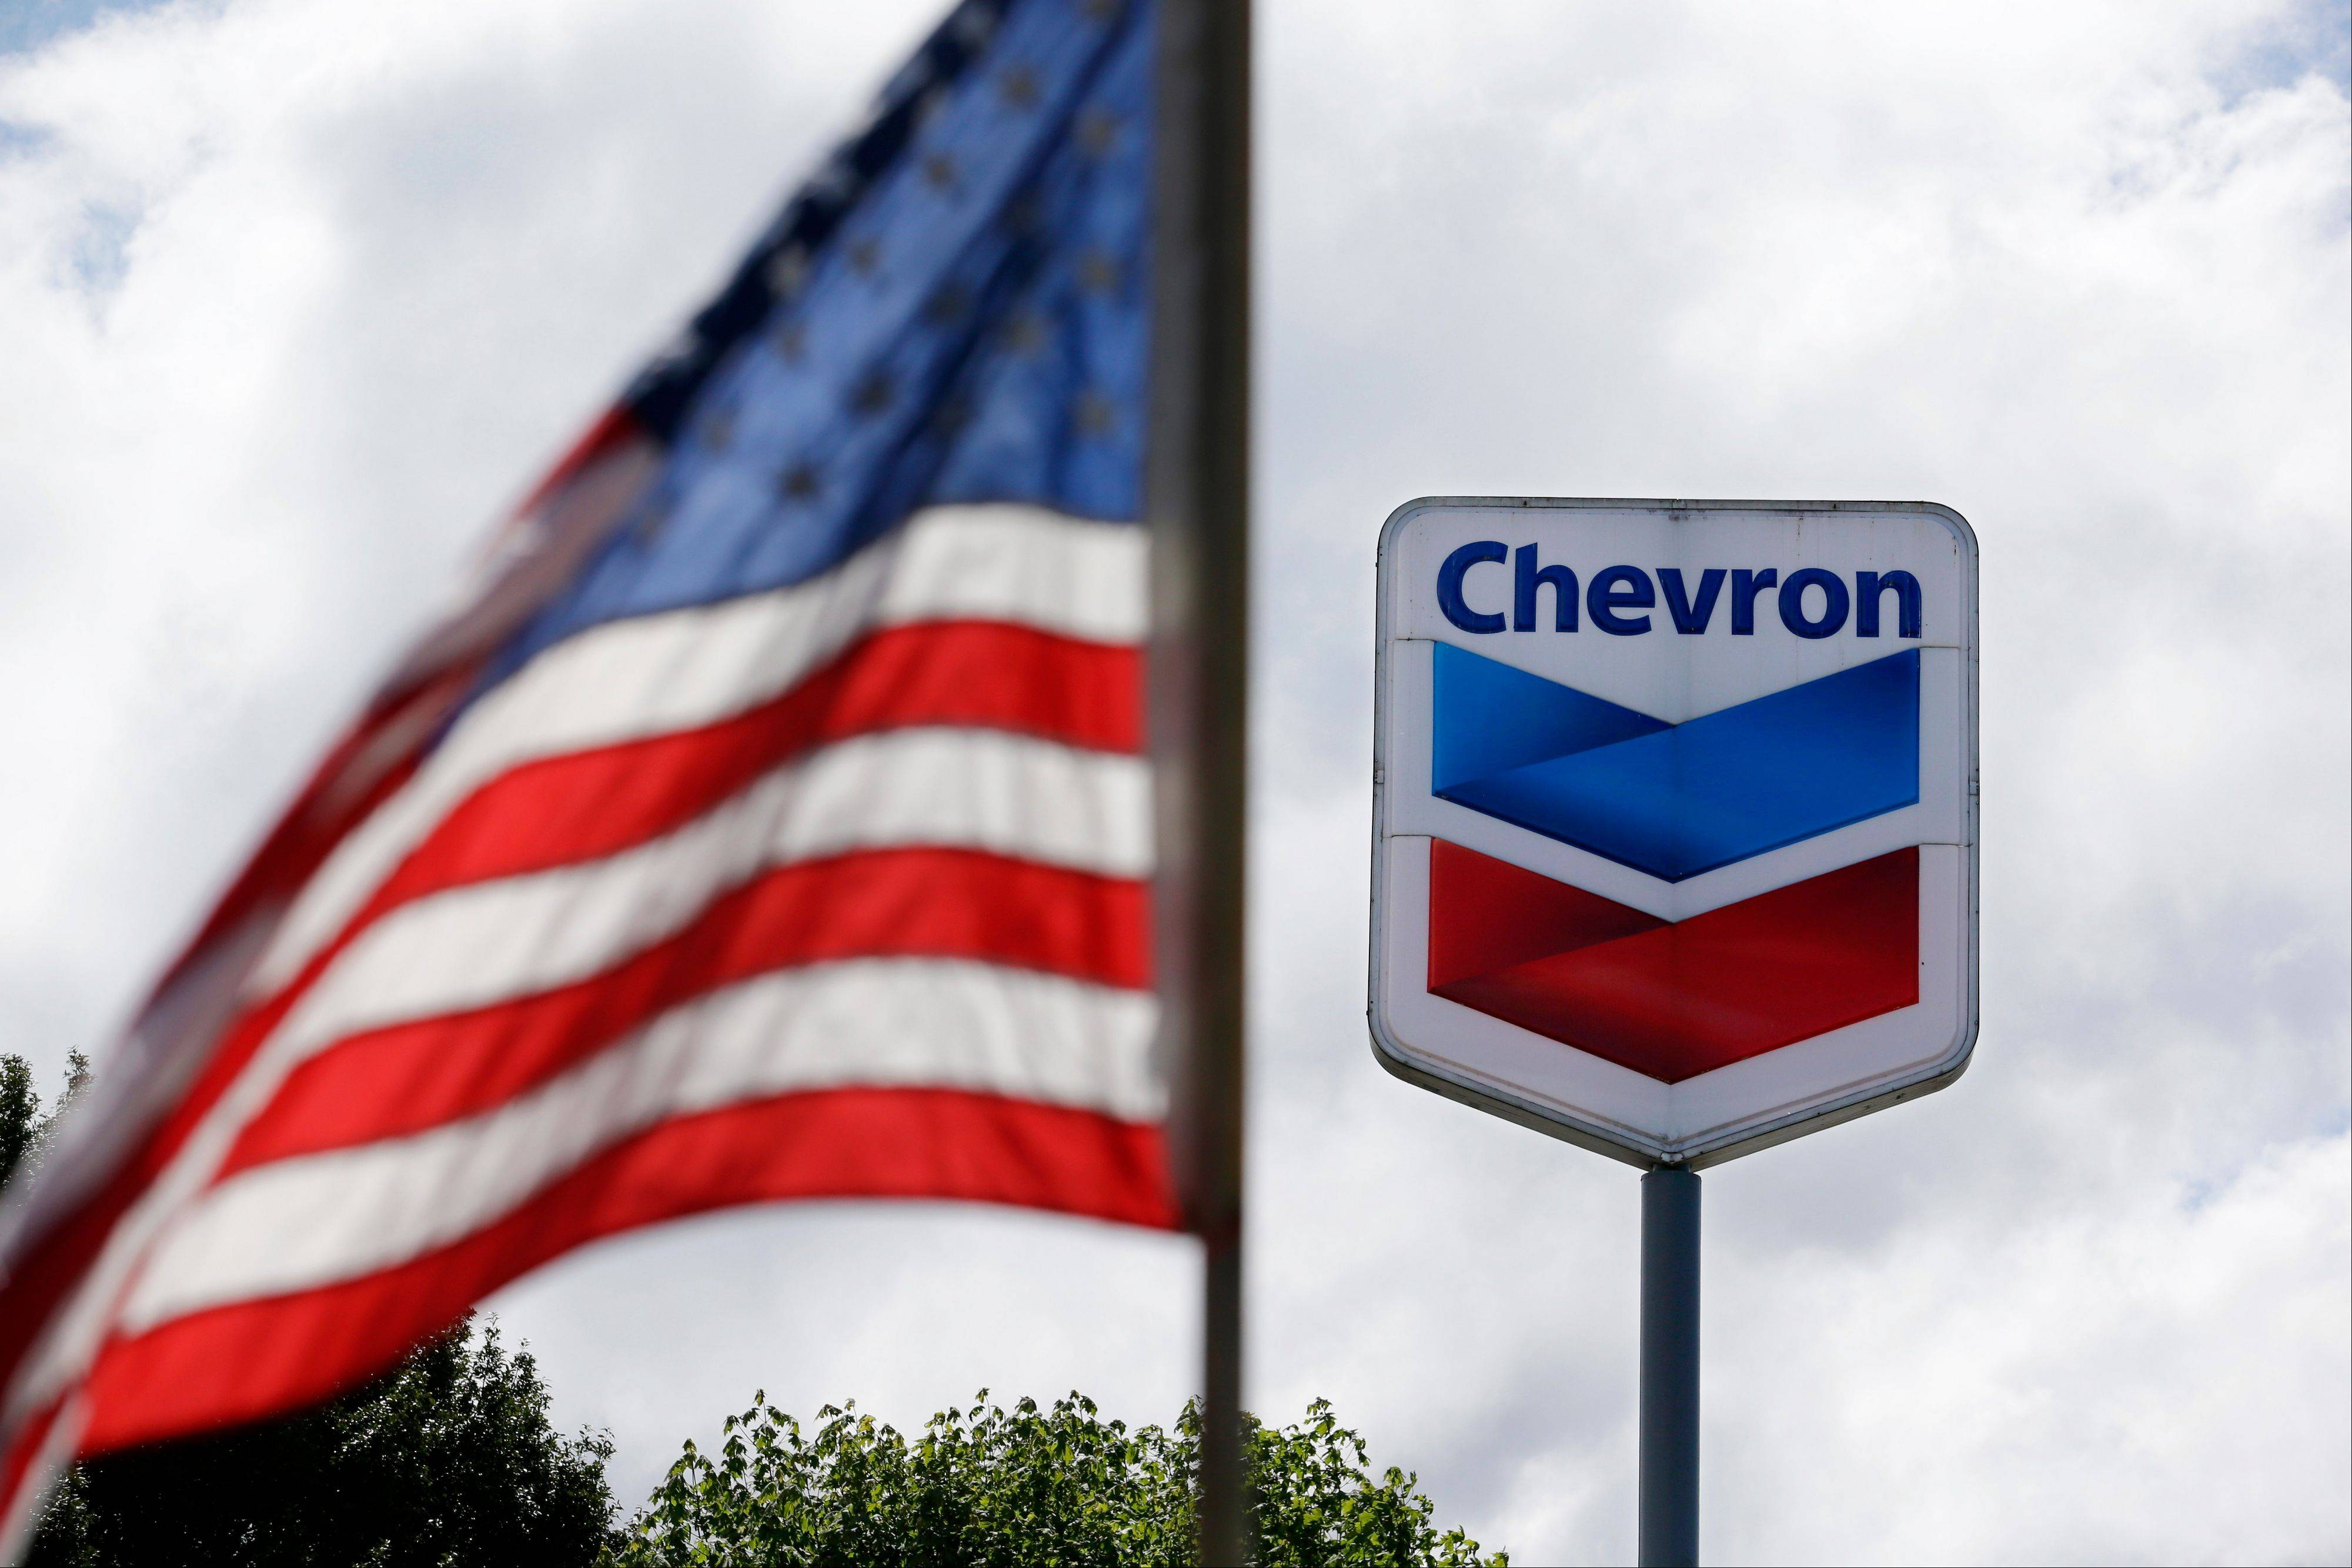 Chevron says profit fell 32 percent in the fourth quarter on lower oil and gas production and lower prices for refined fuels relative to the cost of crude.